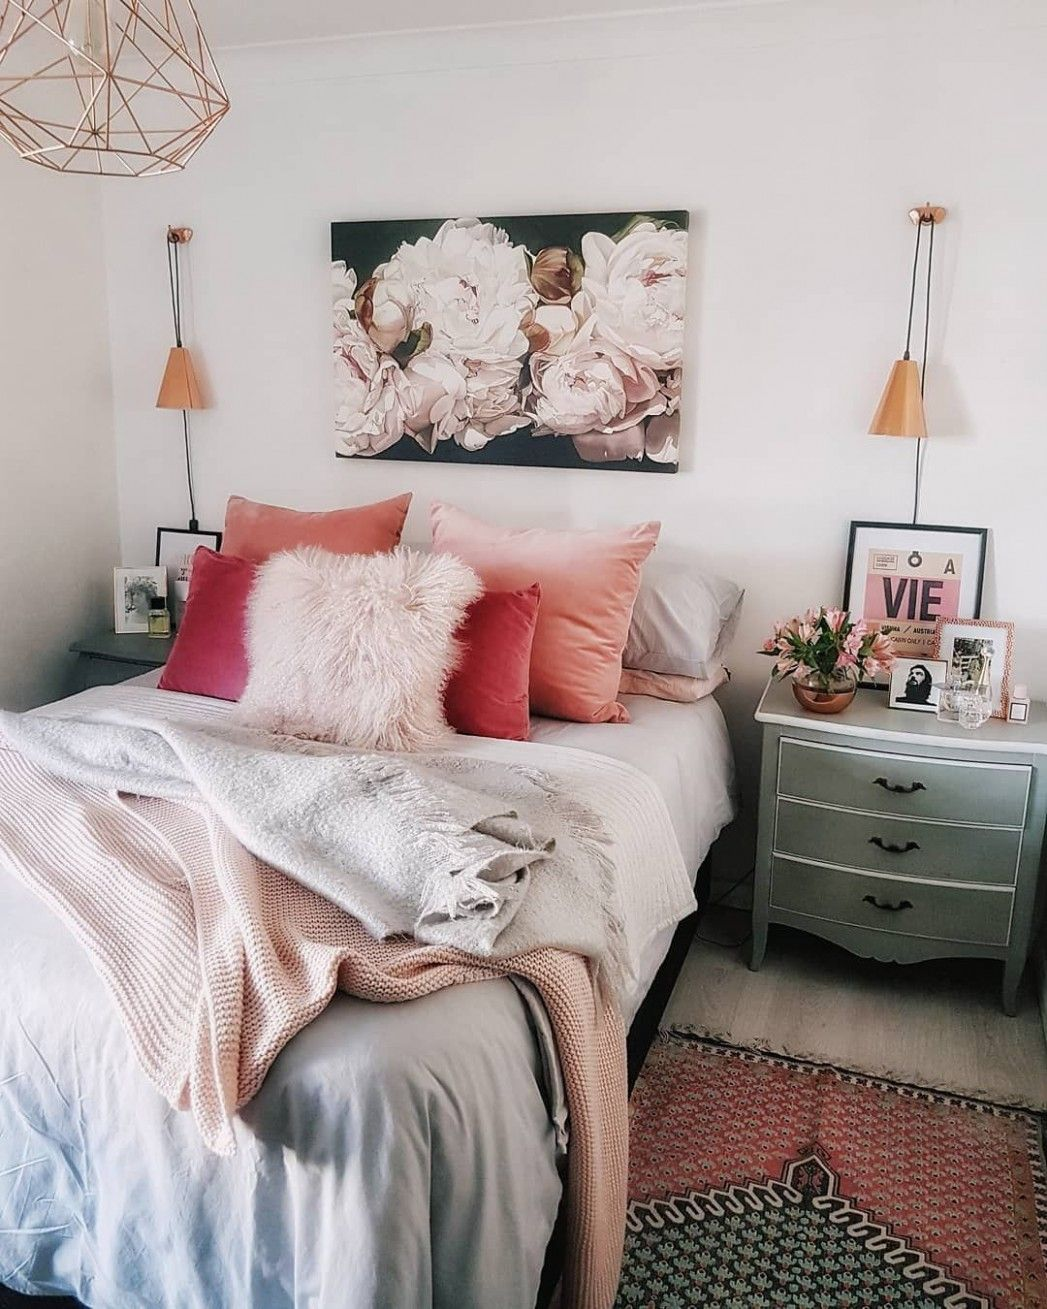 Small Bedroom Decorating Ideas Pinterest In 2020 Small Bedroom Decor Small Bedroom Bedroom Ideas Pinterest